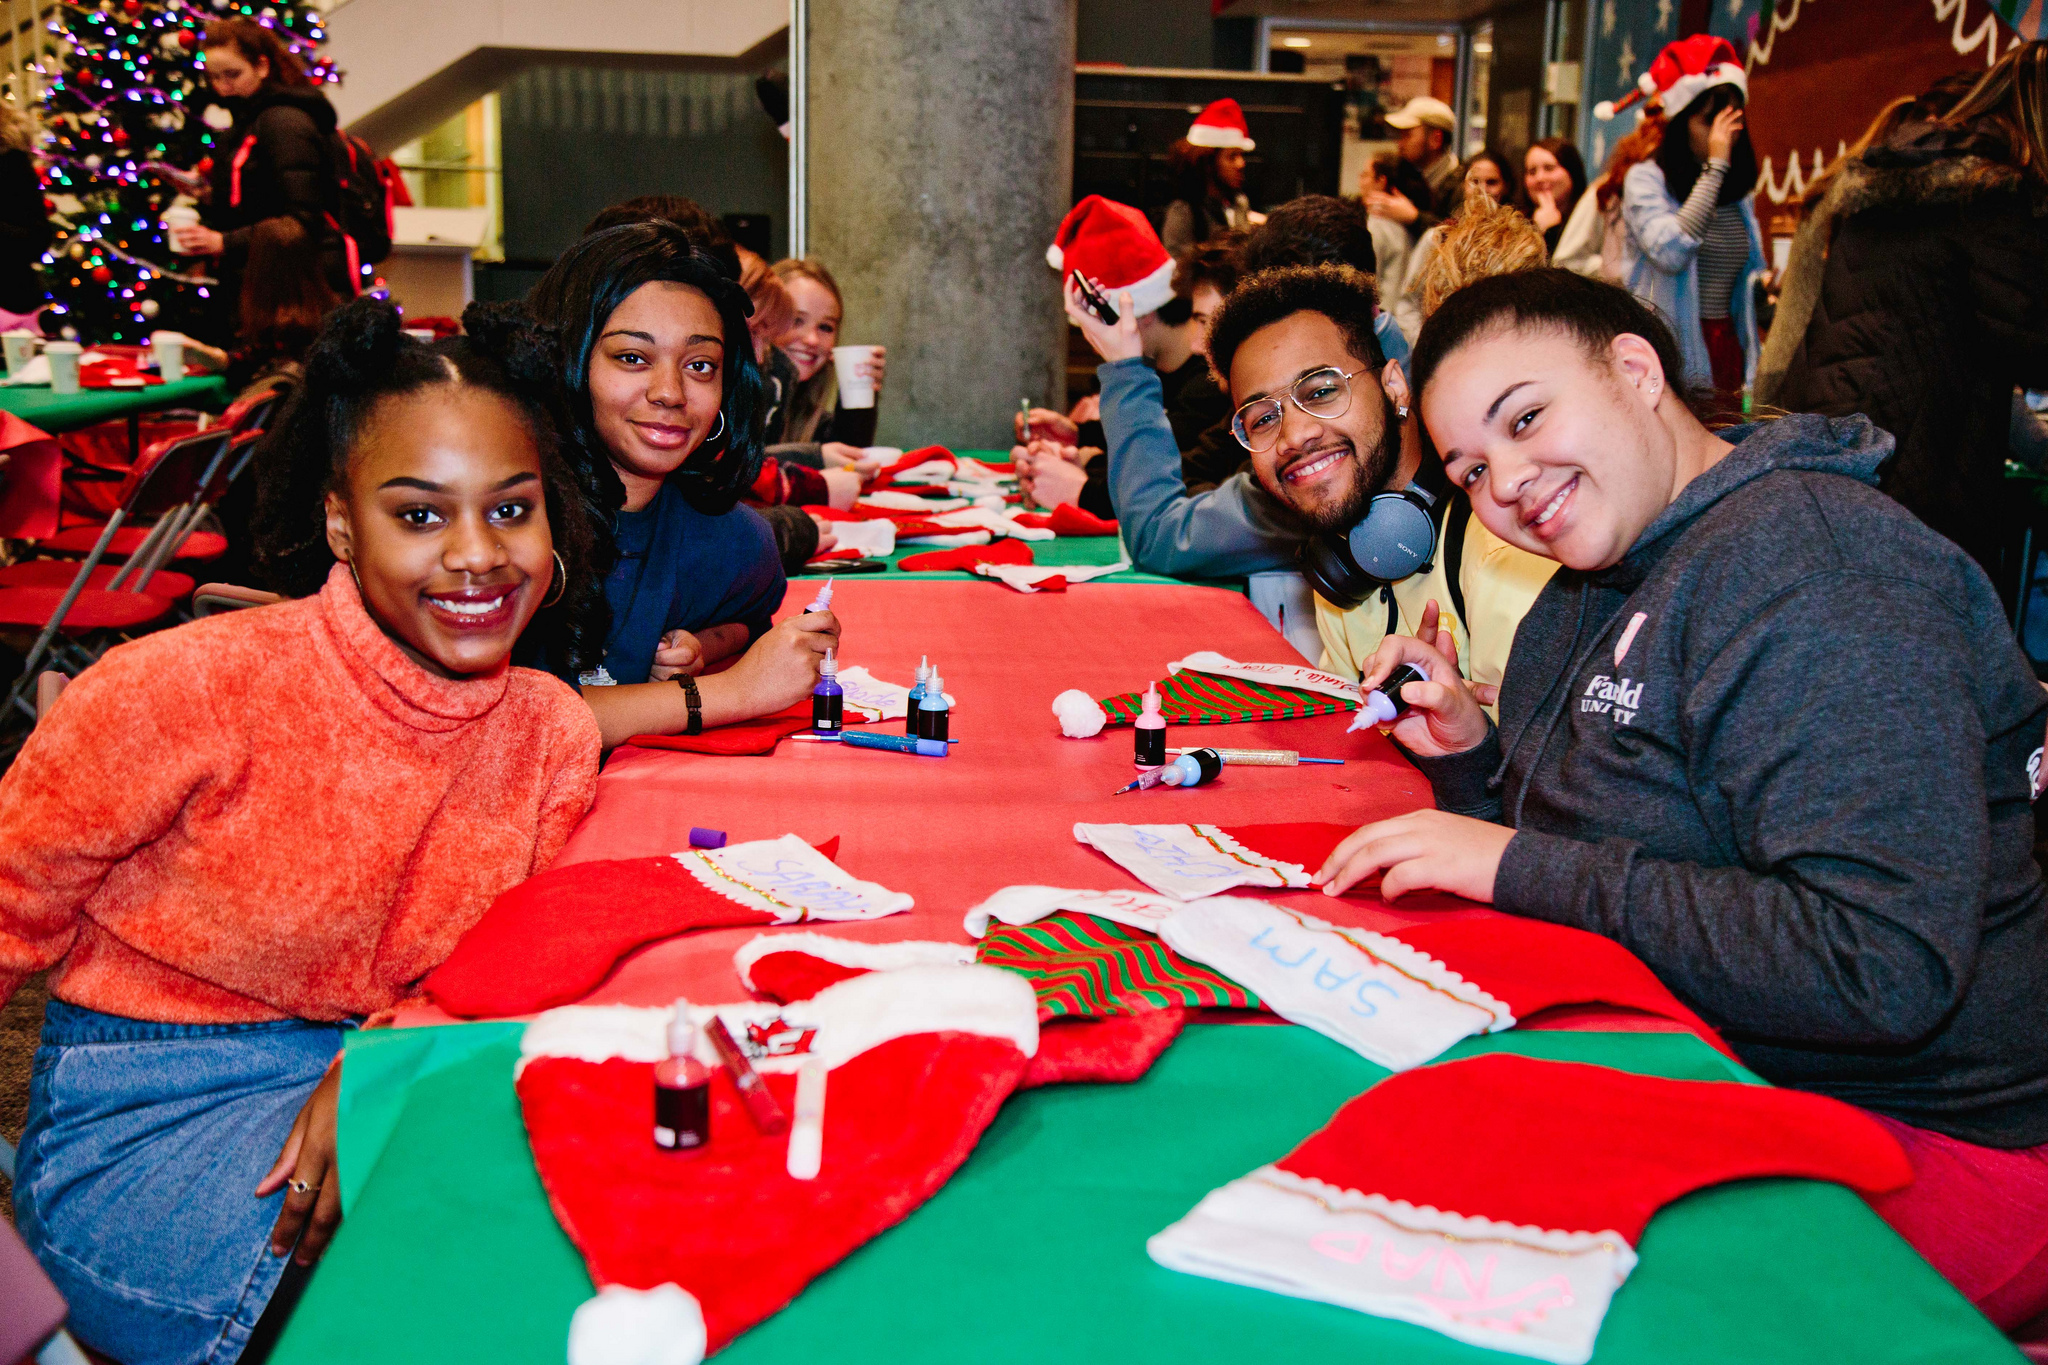 Students made Christmas stockings during the 2018 Tree Lighting and Santa's Workshop at Fairfield University on December 6 (photo courtesy of Fairfield University;   click here for more photos of Fairfield at Christmas  )